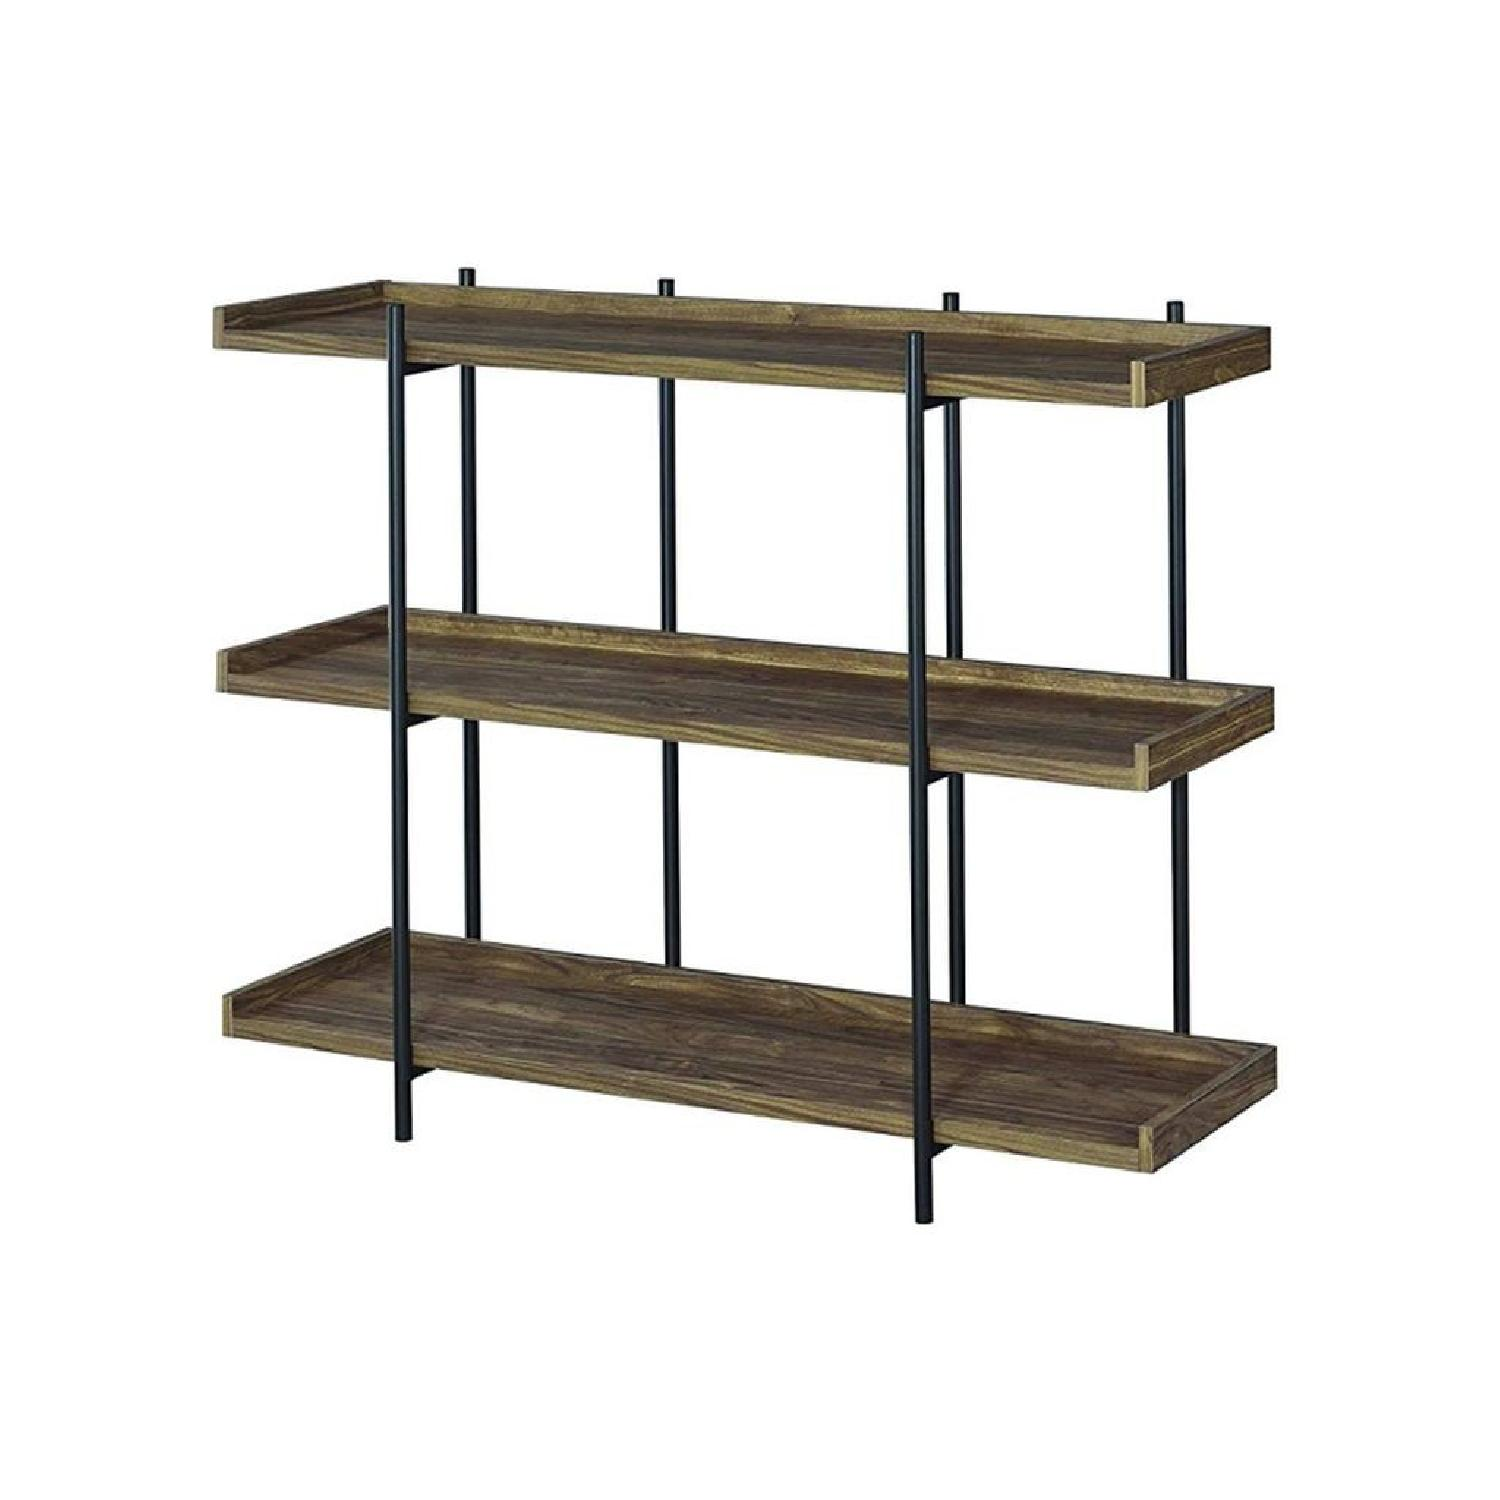 Industrial Style 3-Shelves Bookcase in Aged Walnut Finish - image-2